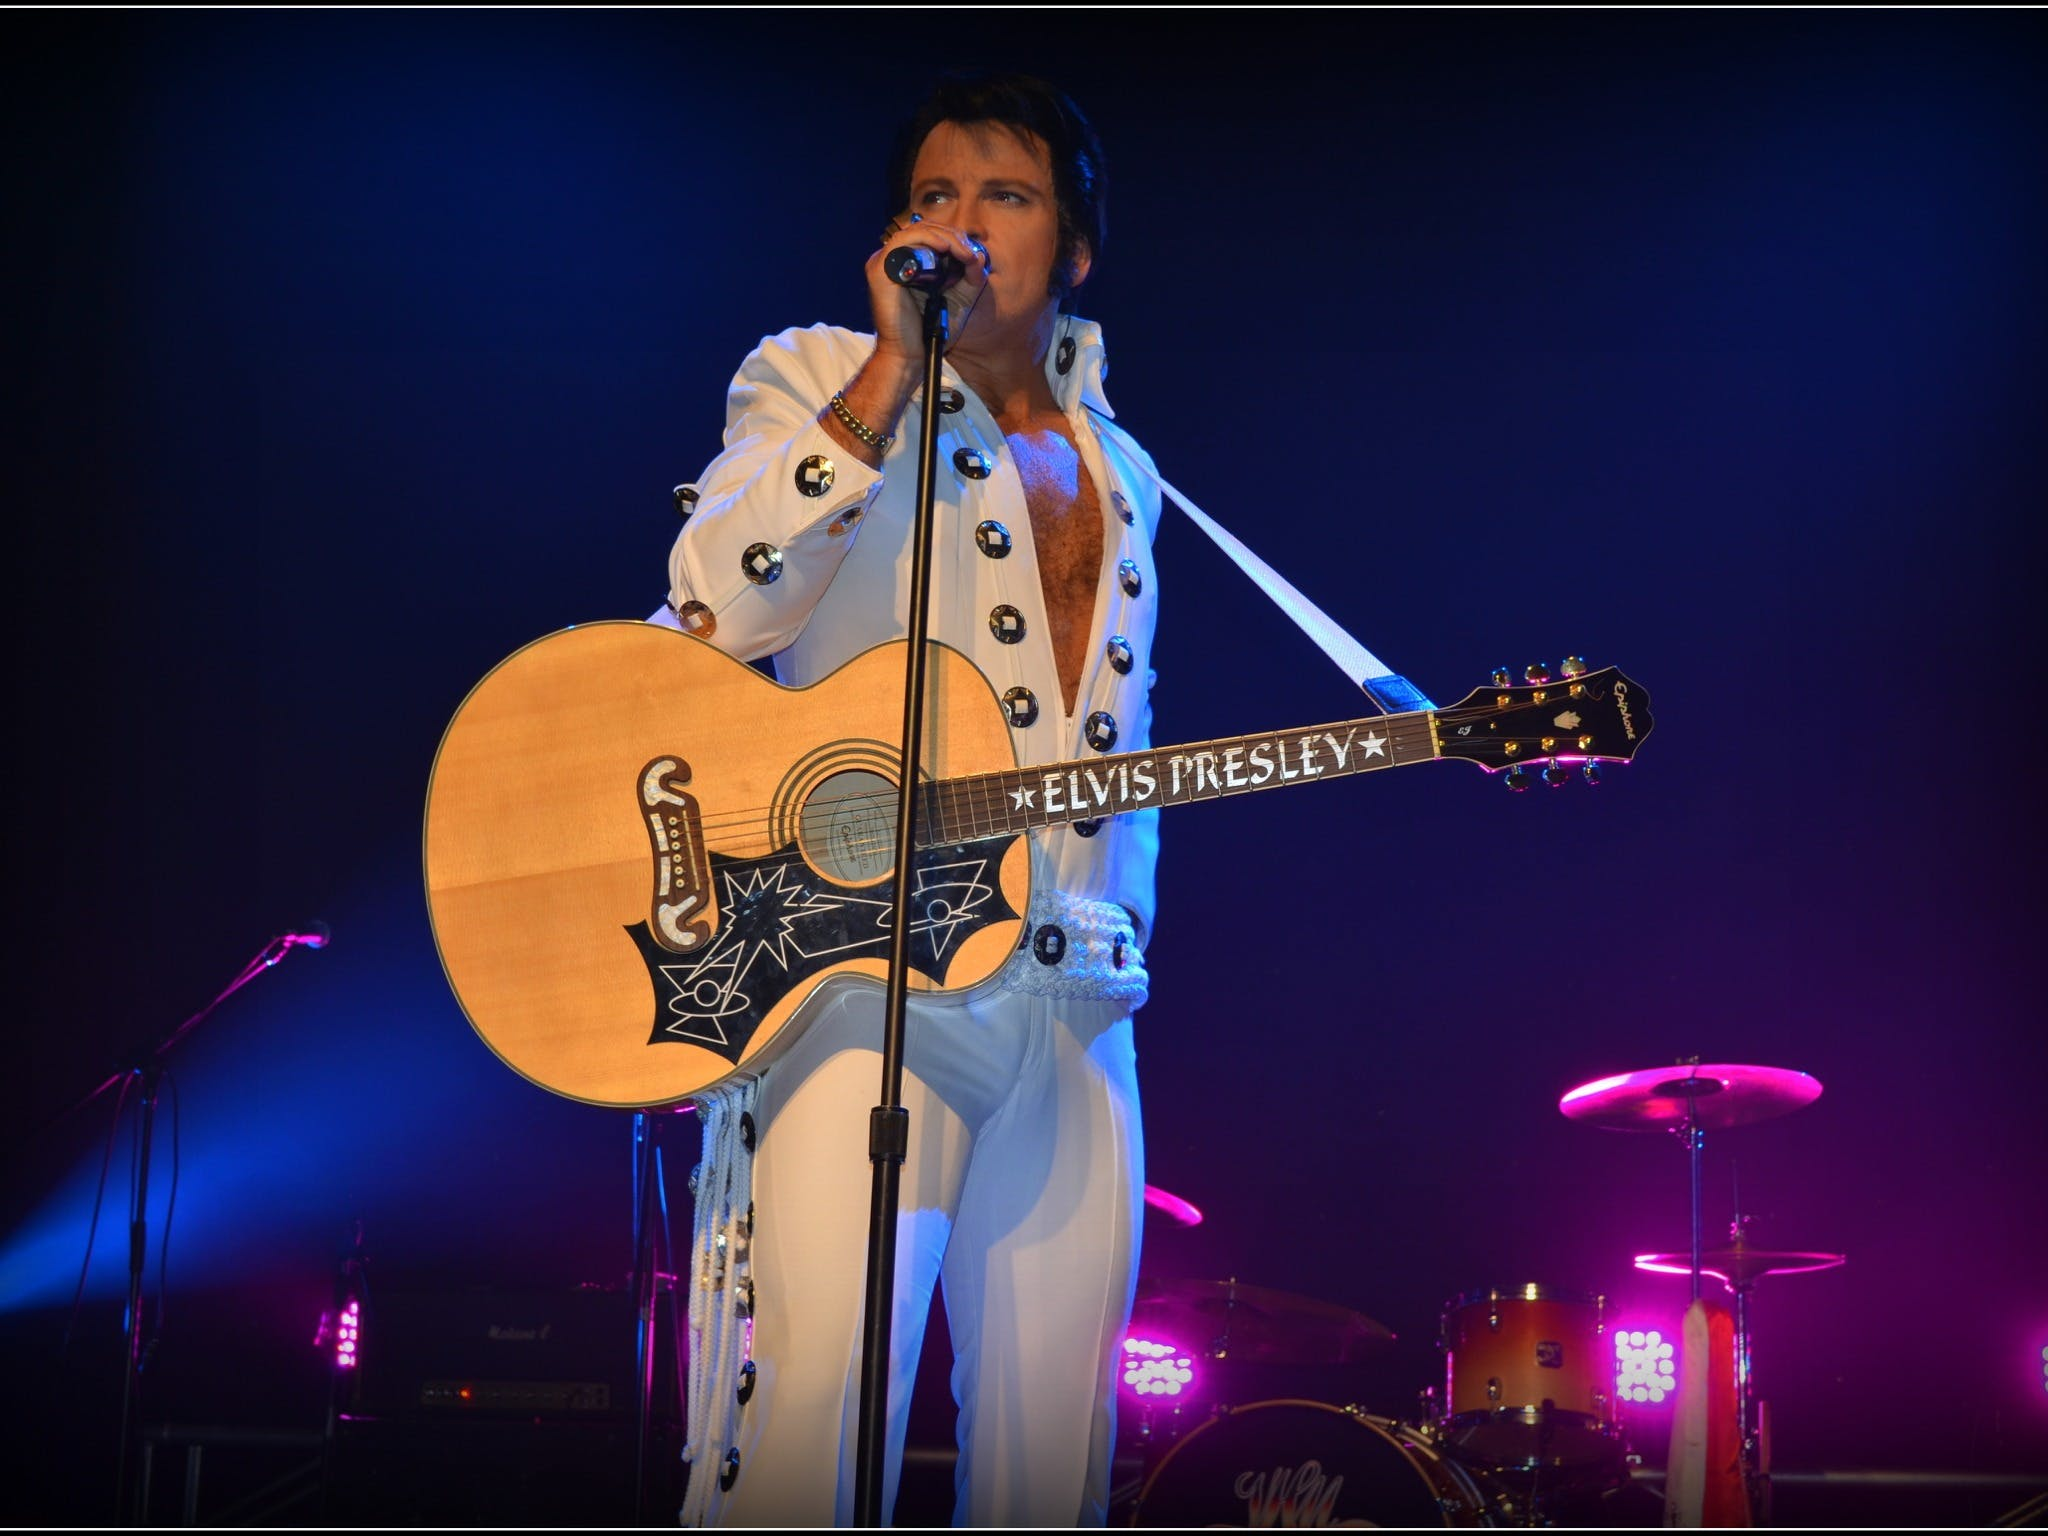 Elvis Forever - Damian Mullin 'Up Close and Personal' - Pubs Sydney